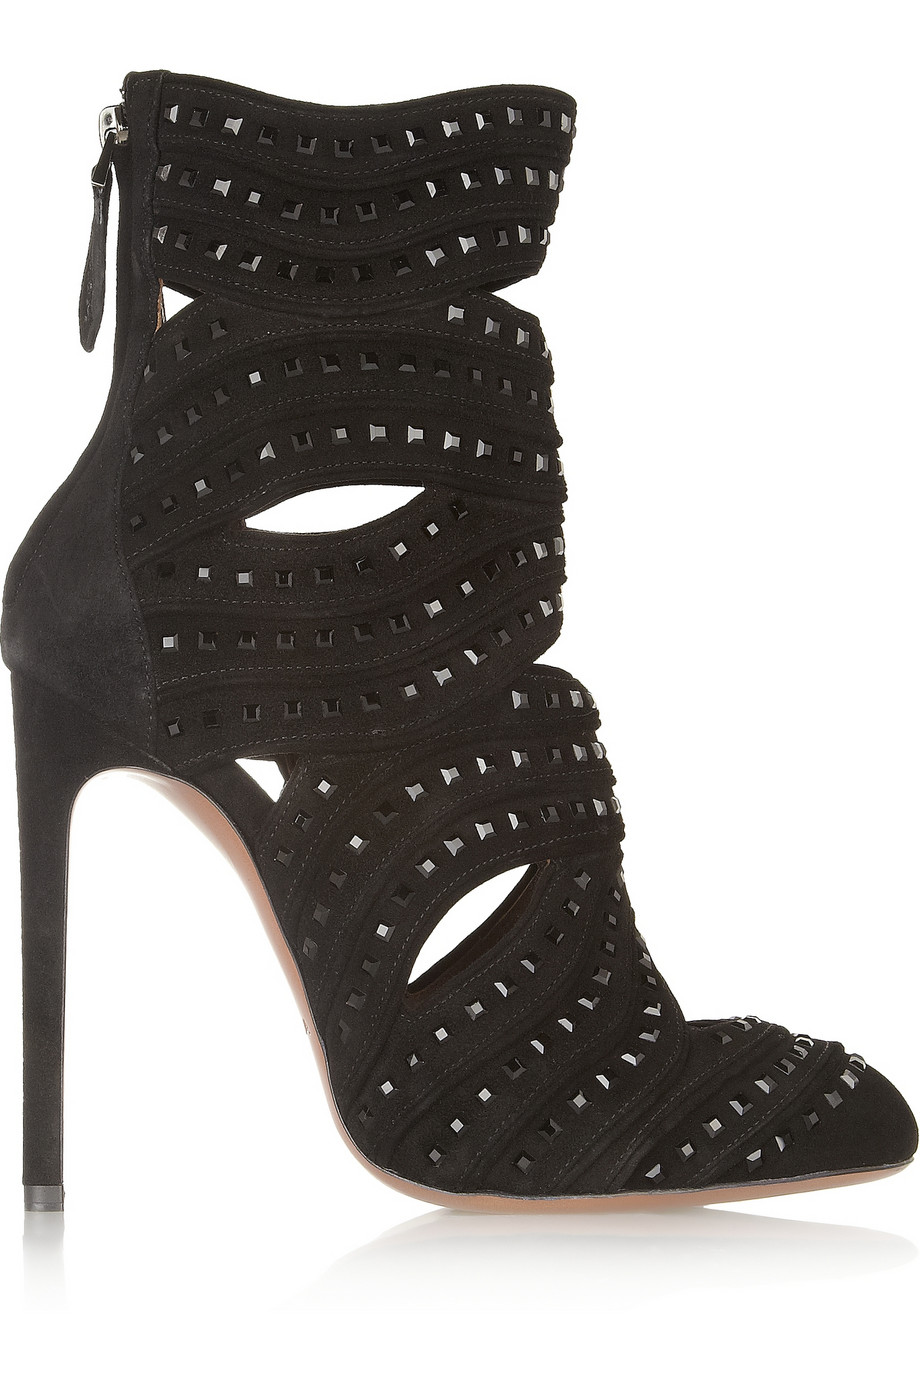 Alaia Studded Cutout Suede Bootie $1710 marked down from $4275